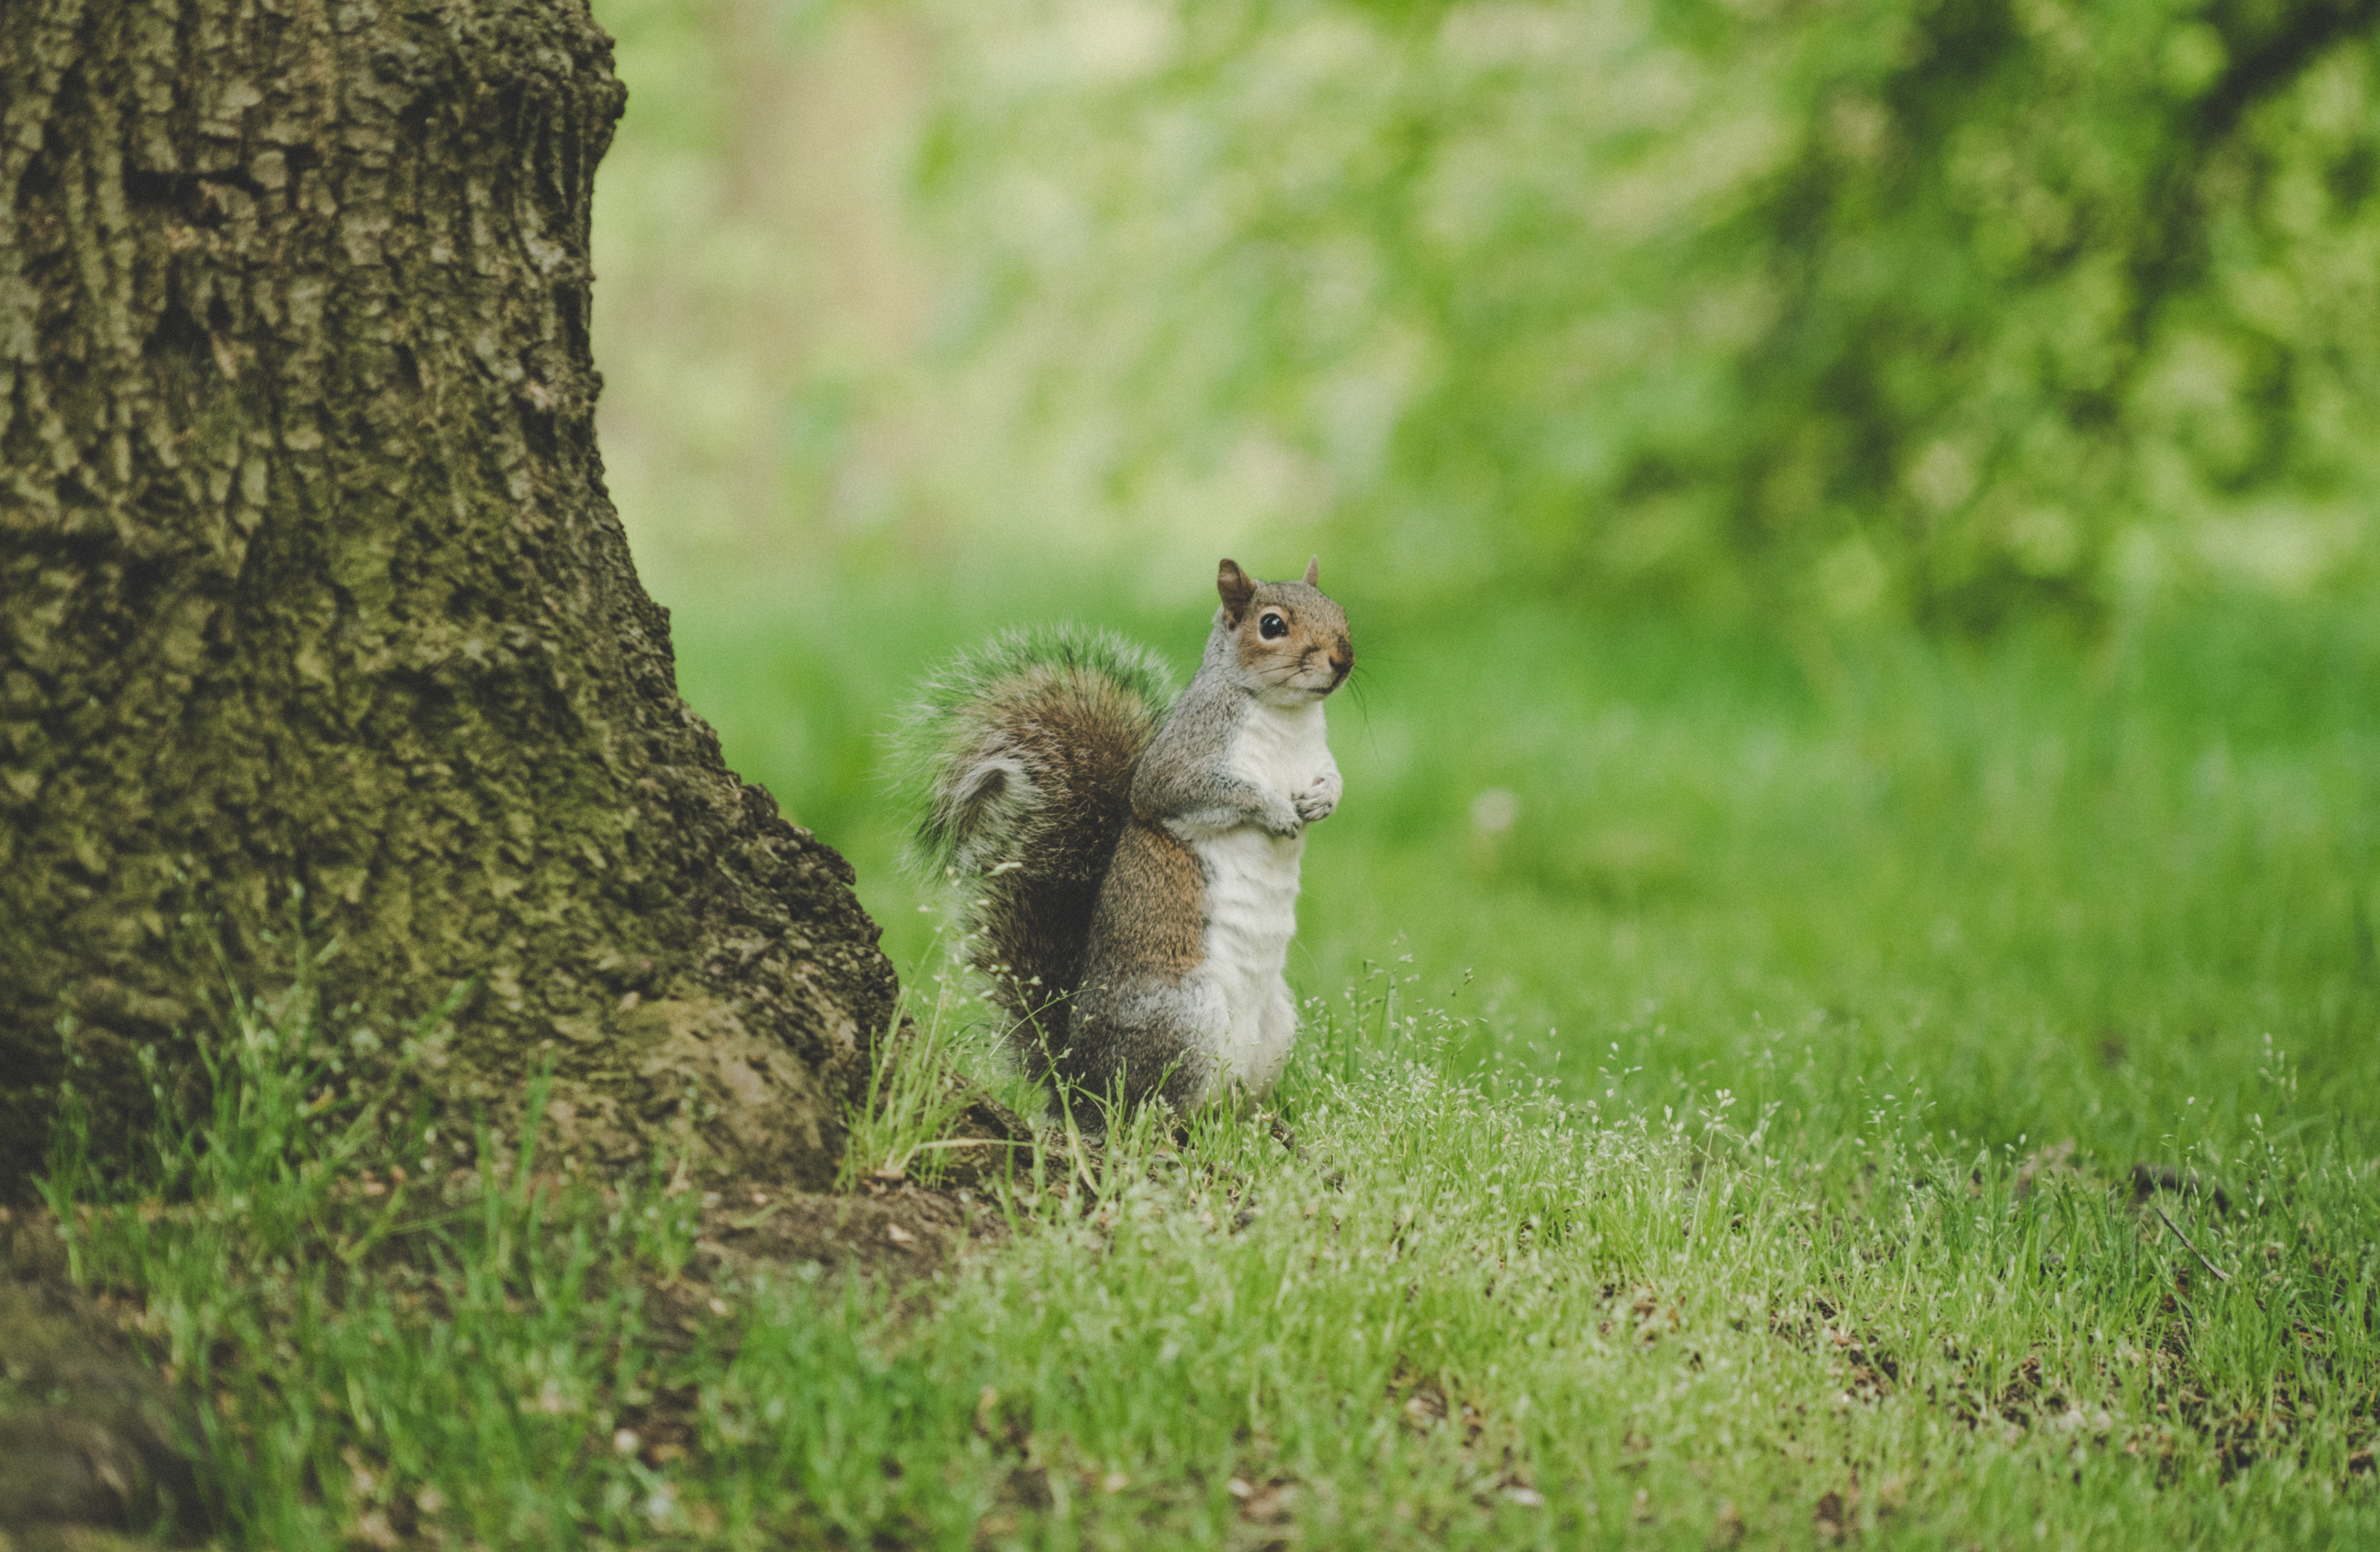 111440 download wallpaper Animals, Squirrel, Curious, Standing, Grass, Wildlife screensavers and pictures for free